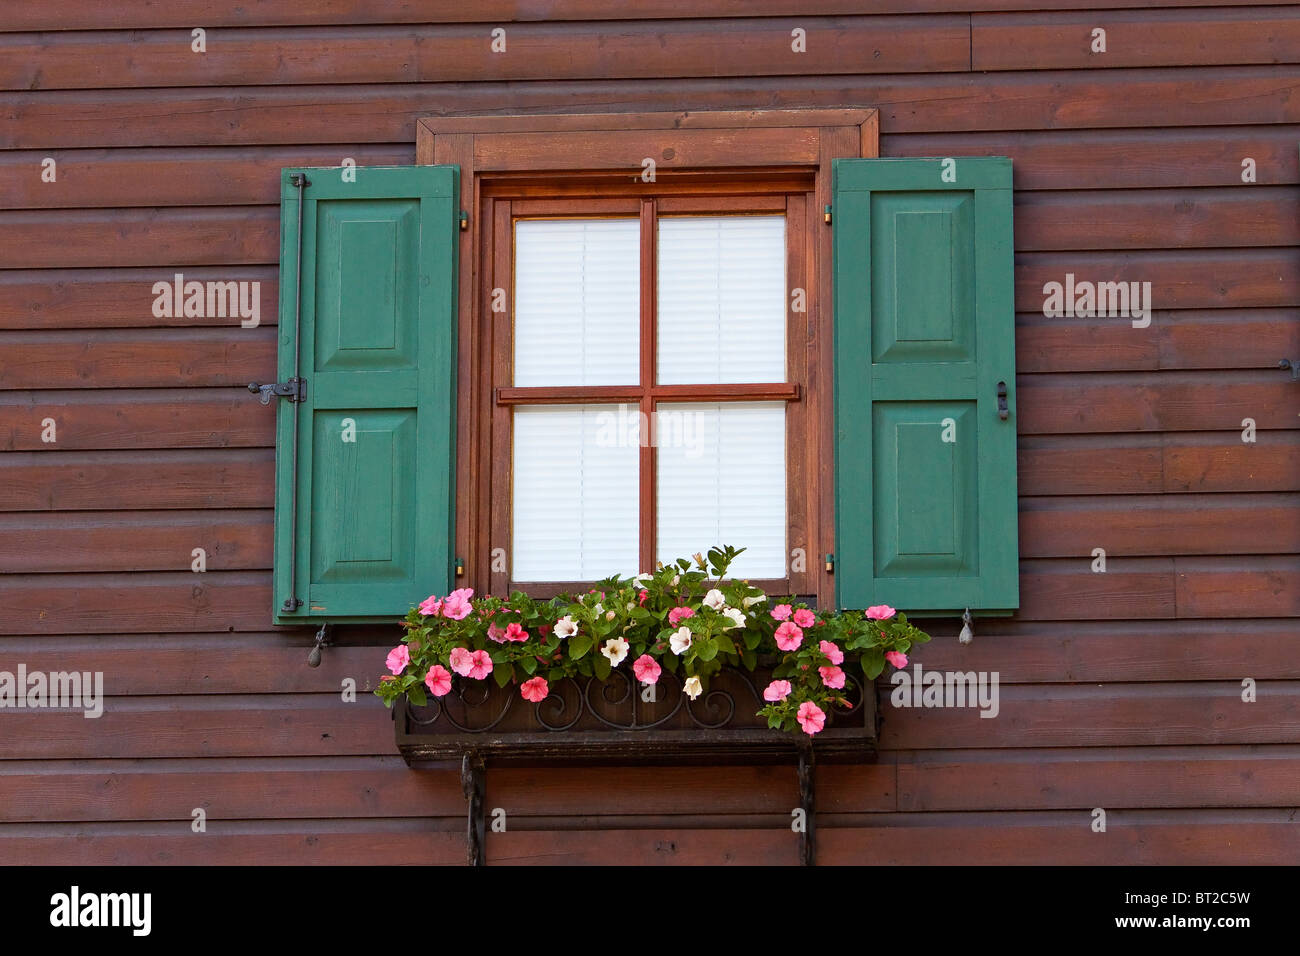 Austria Kitzbuhel Traditional Wood Clad House and Window Stock Photo